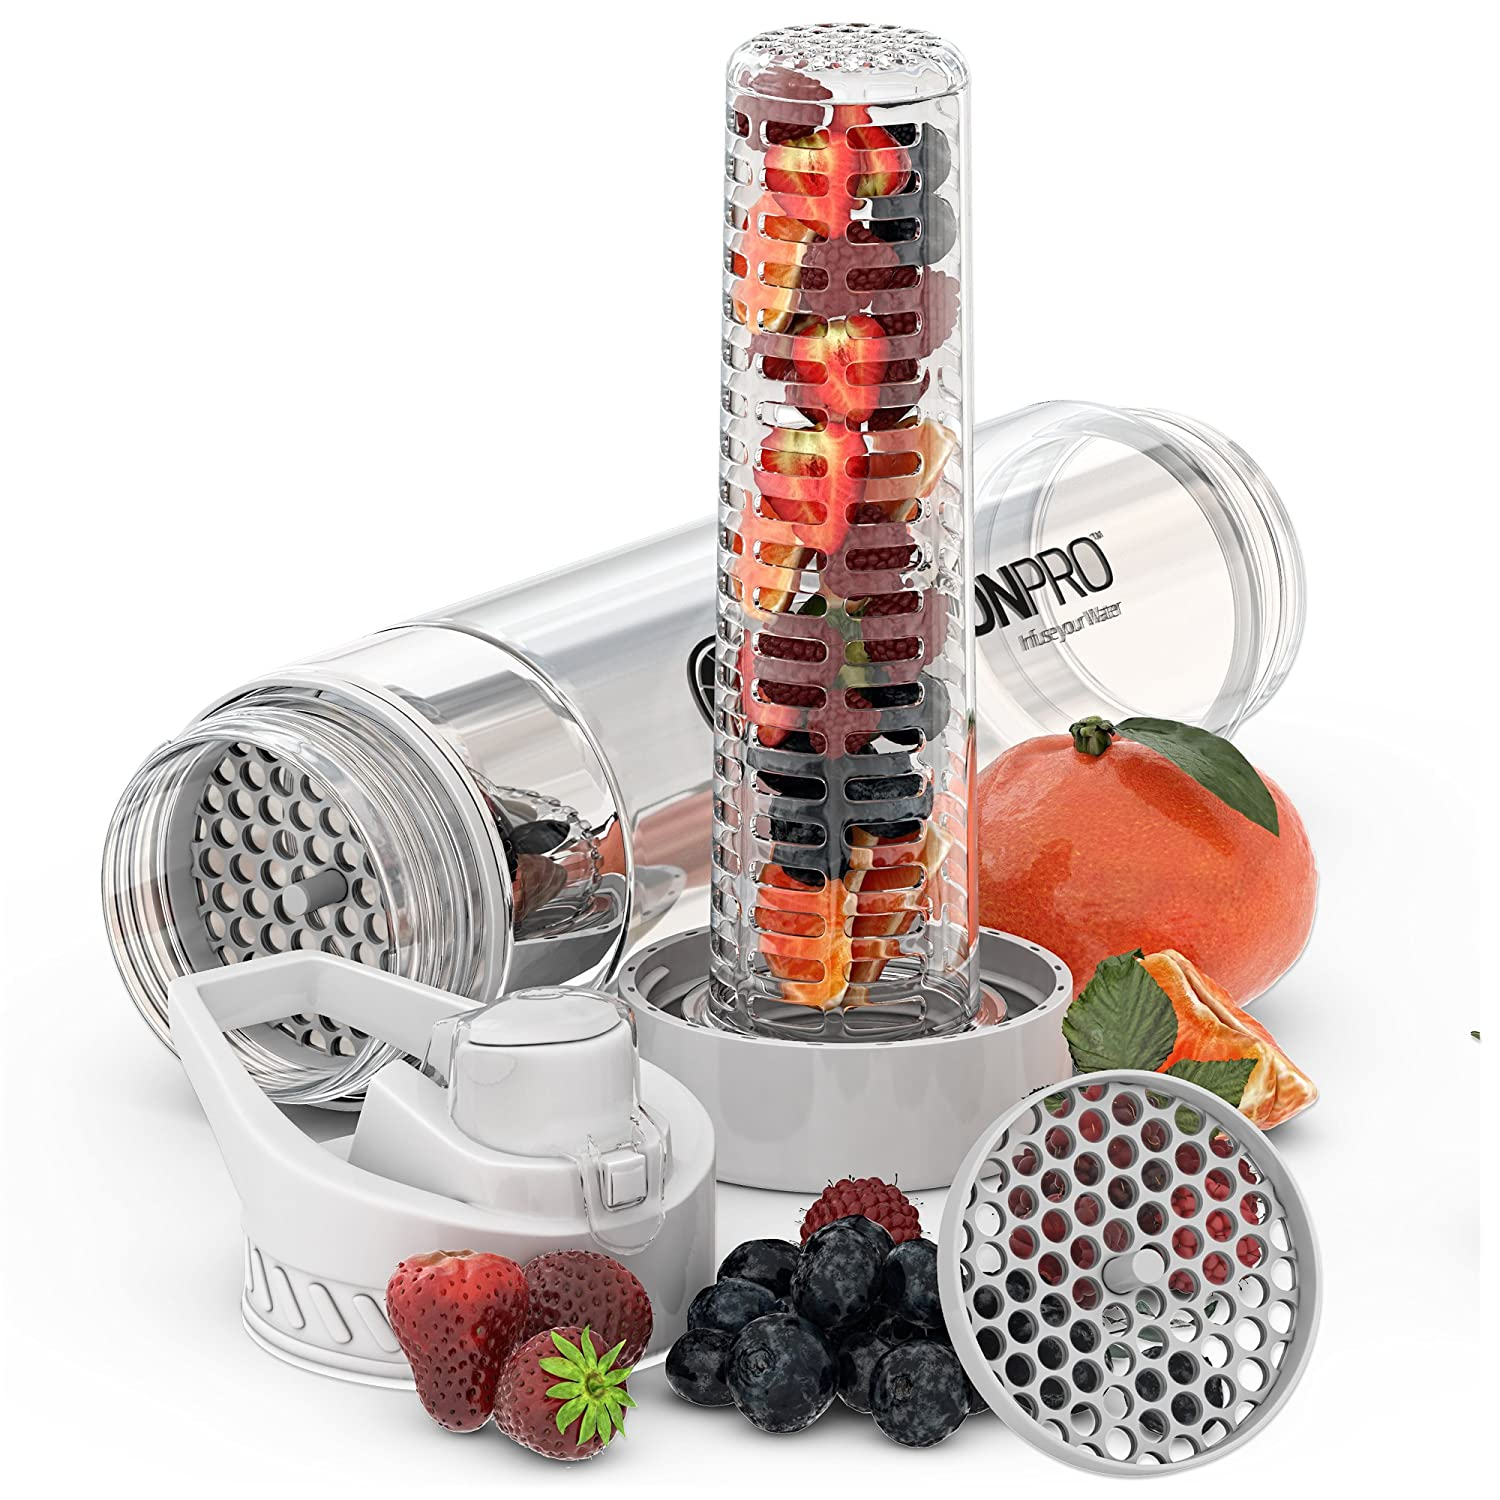 Water Bottle You Put Fruit In: Top Fruit Infuser Water Bootles